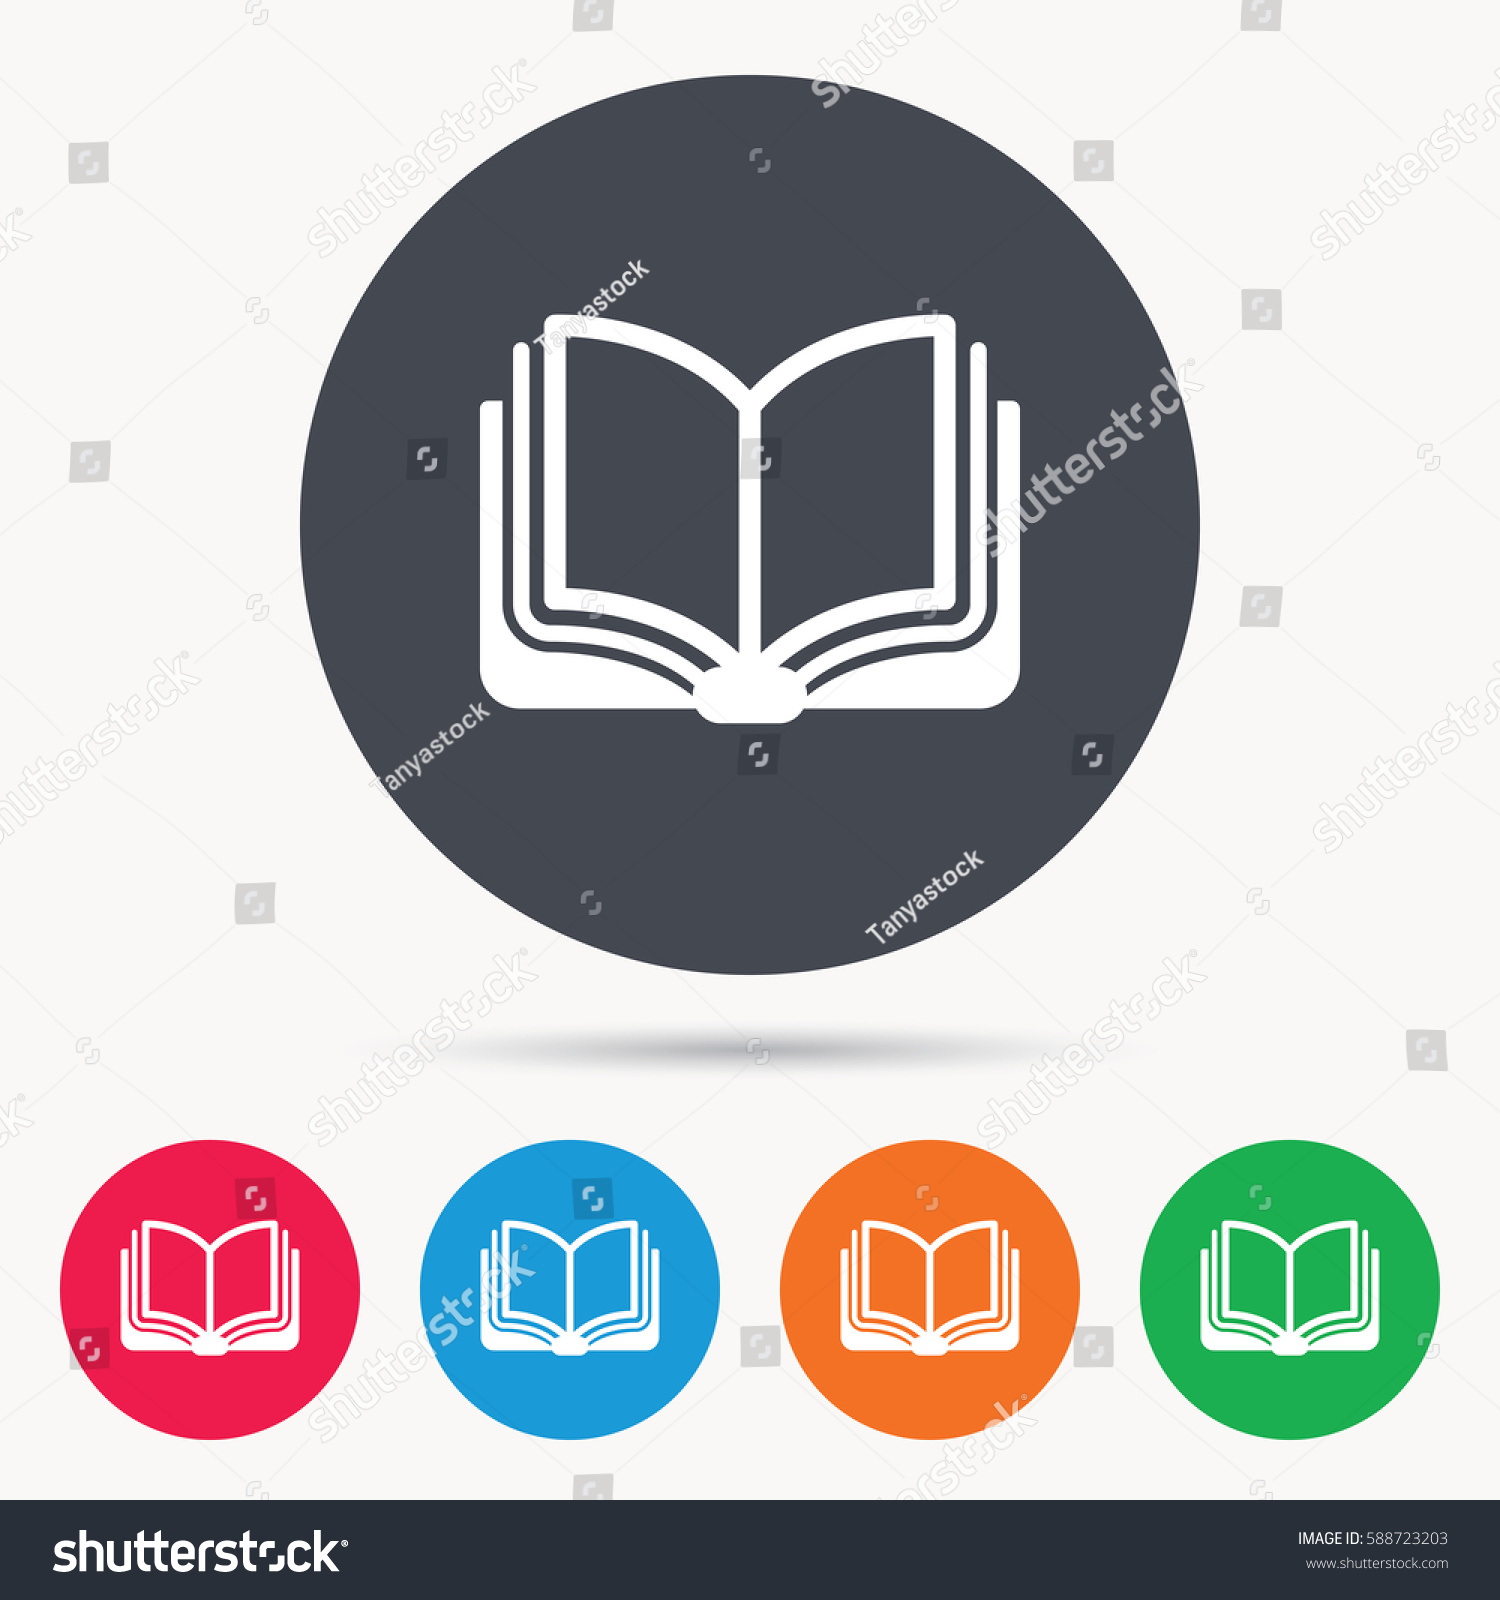 book icon study literature sign education stock illustration  book icon study literature sign education stock illustration 588723203 shutterstock